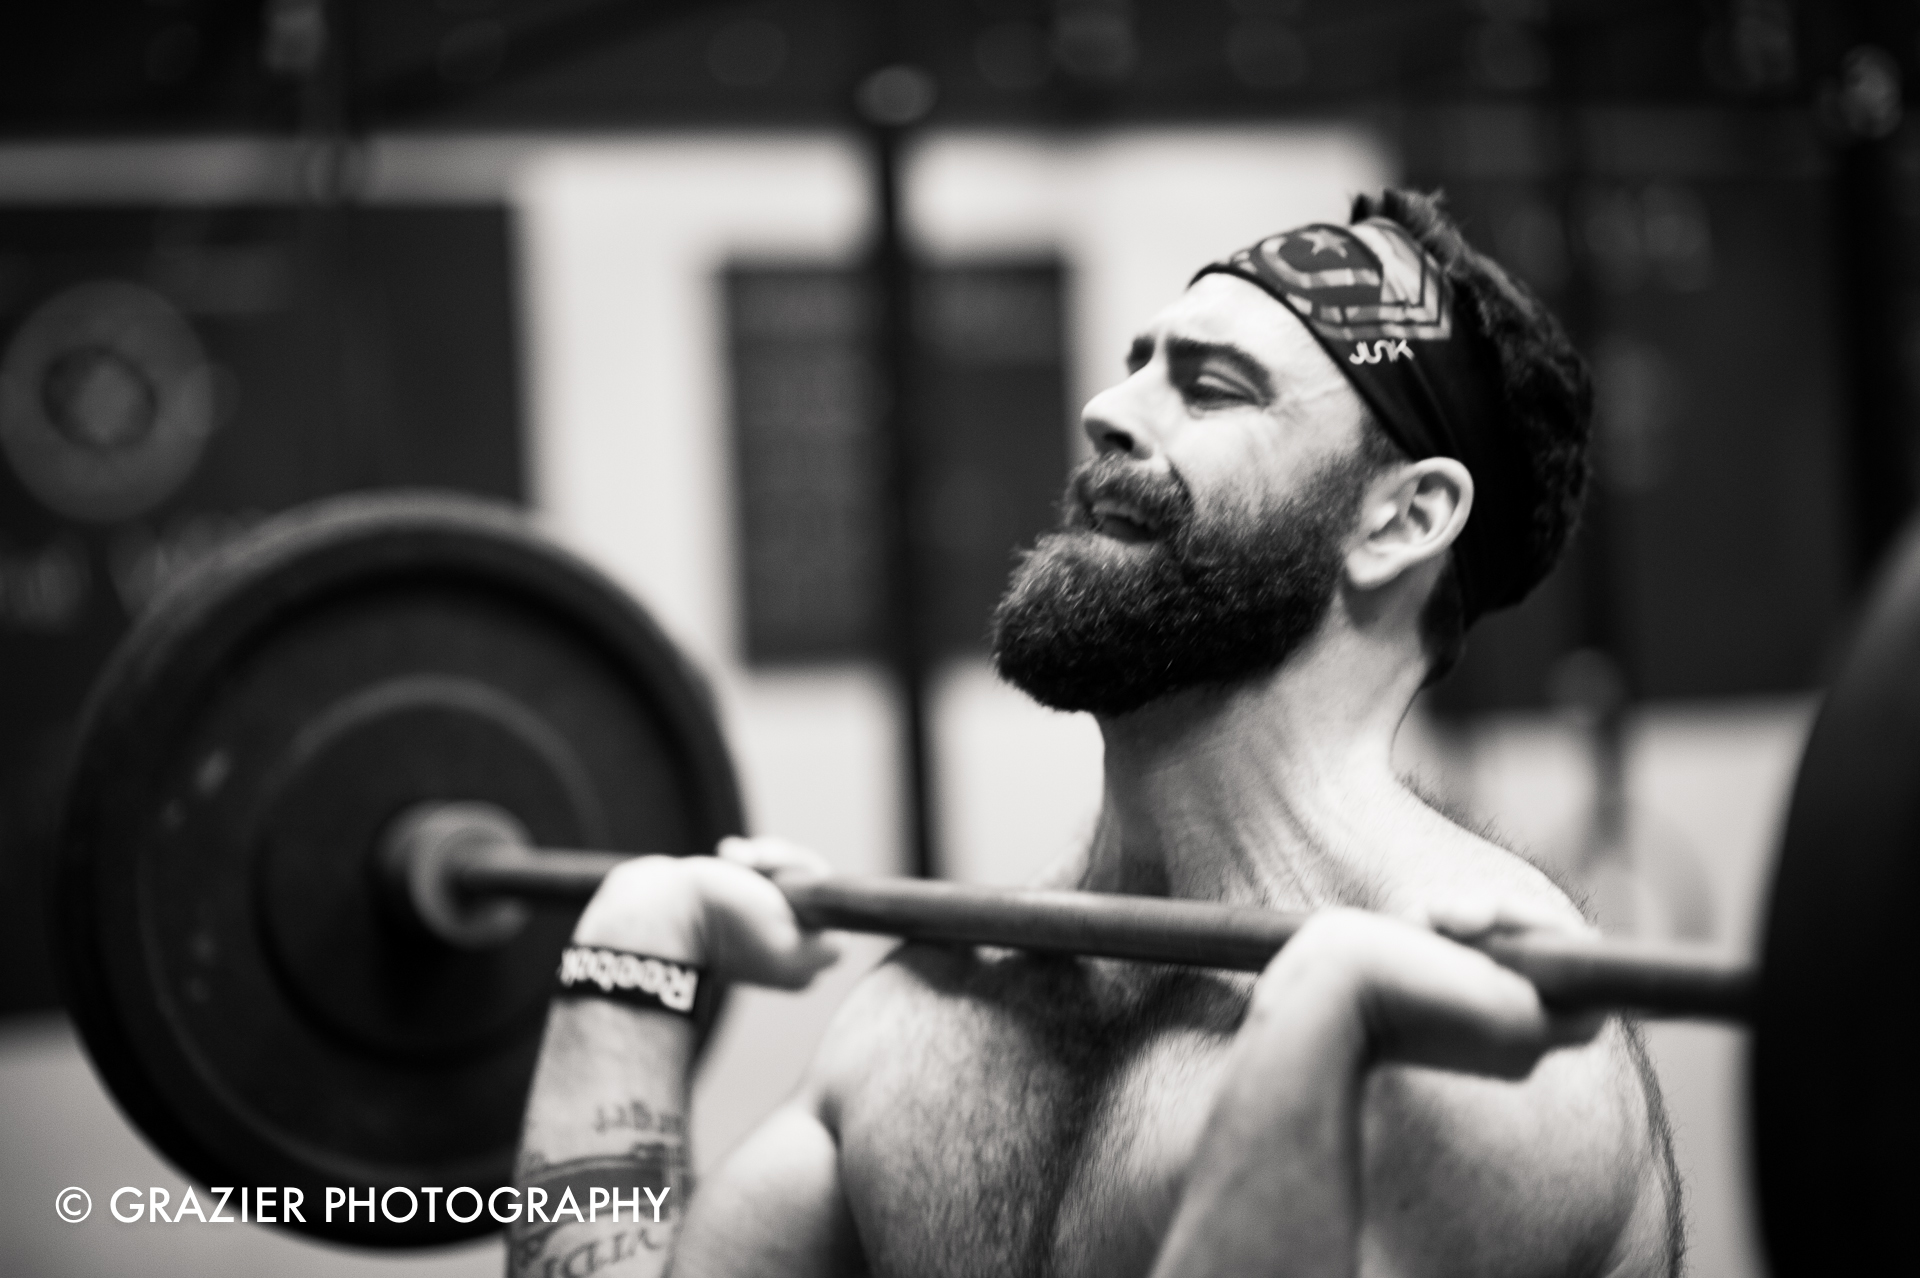 Grazier_Photography_Crossfit_150328-75.JPG